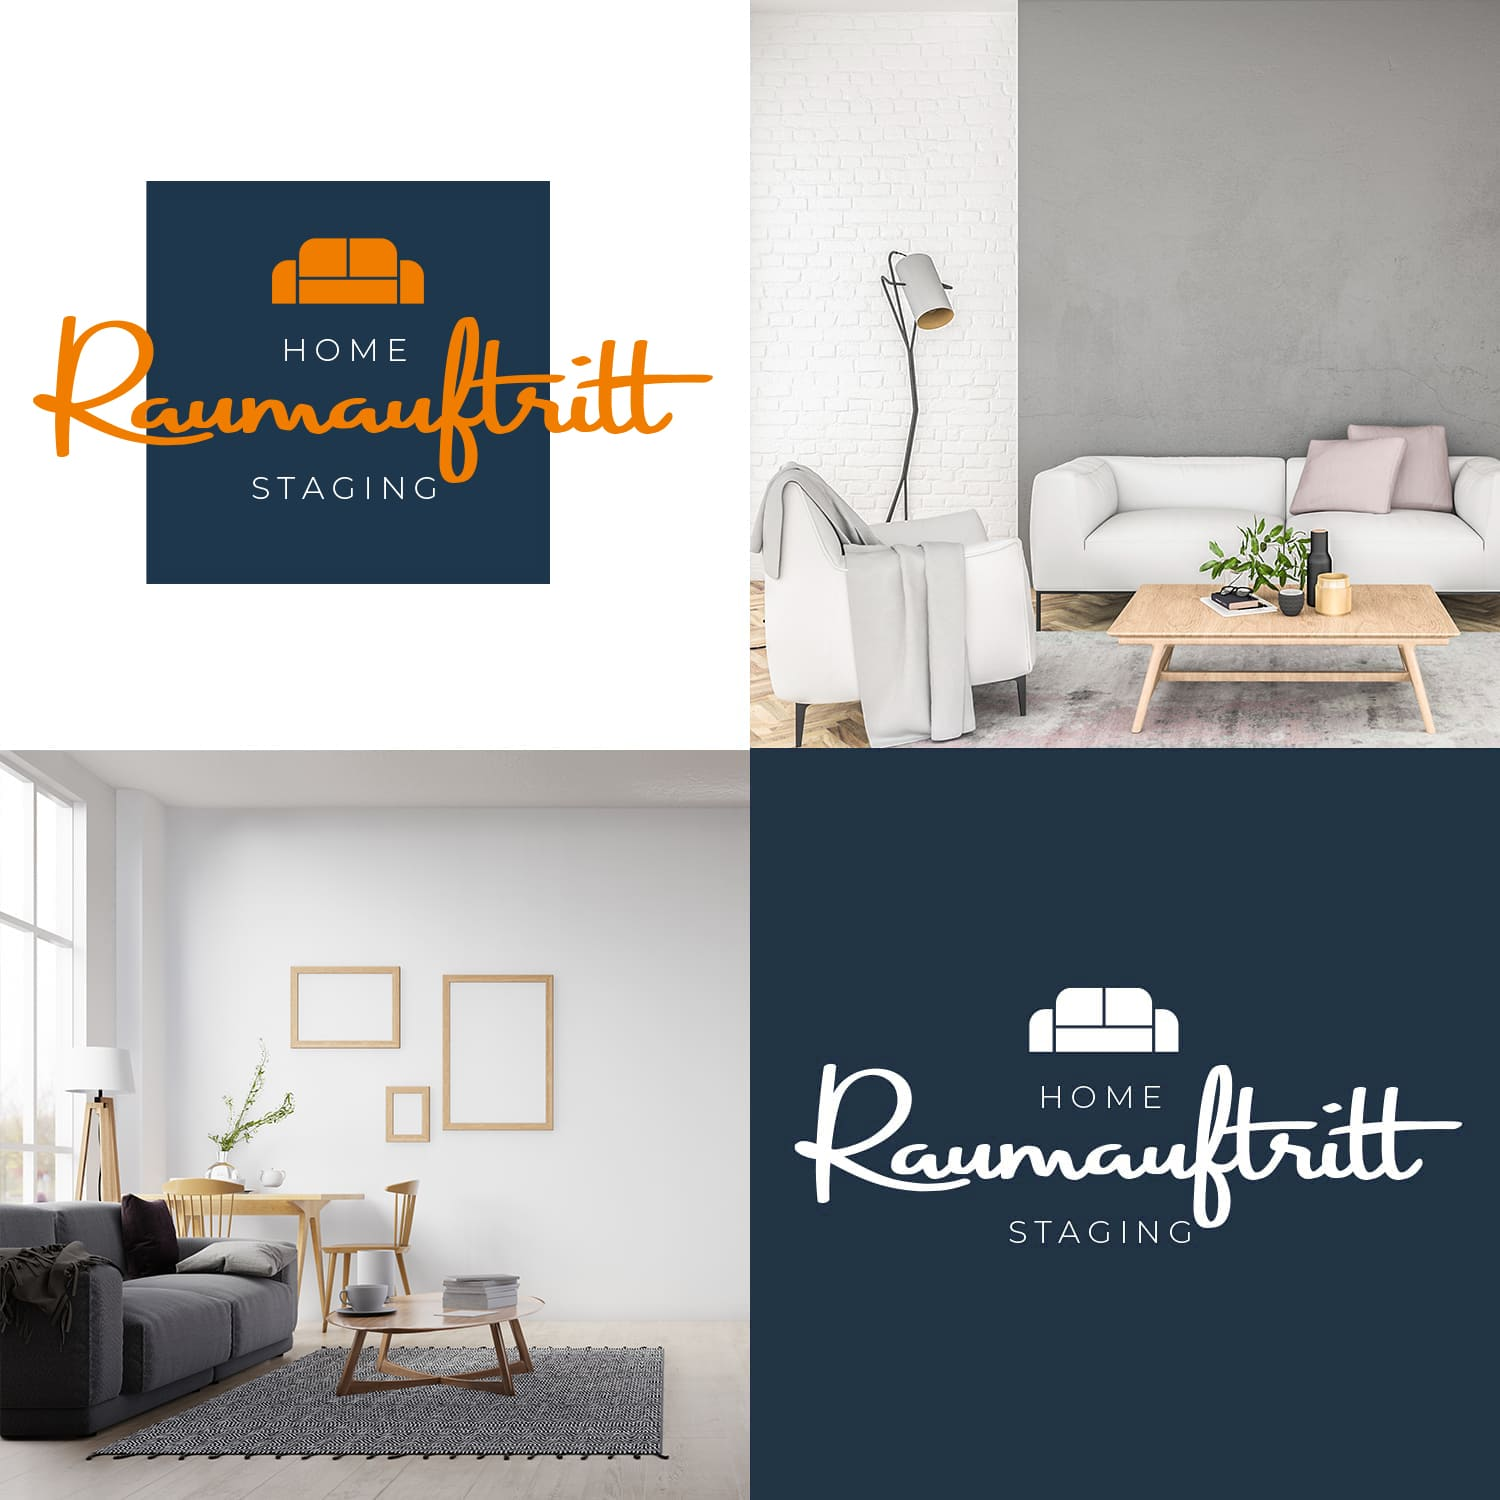 Logodesign Raumauftritt in Ratingen